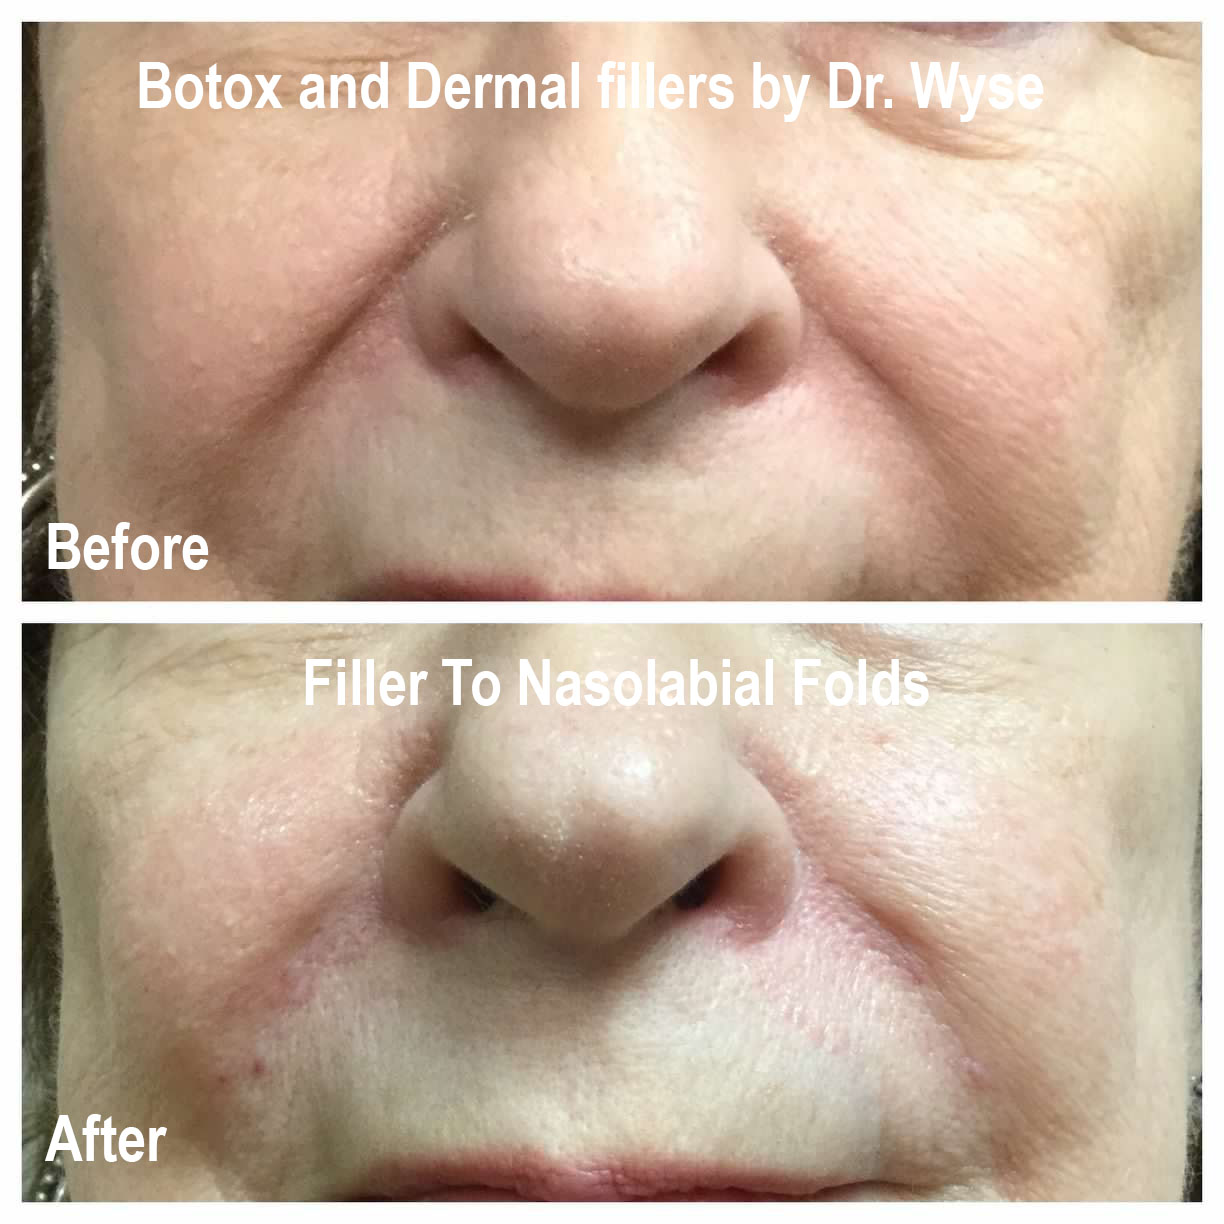 Before and after Nasolabial Folds